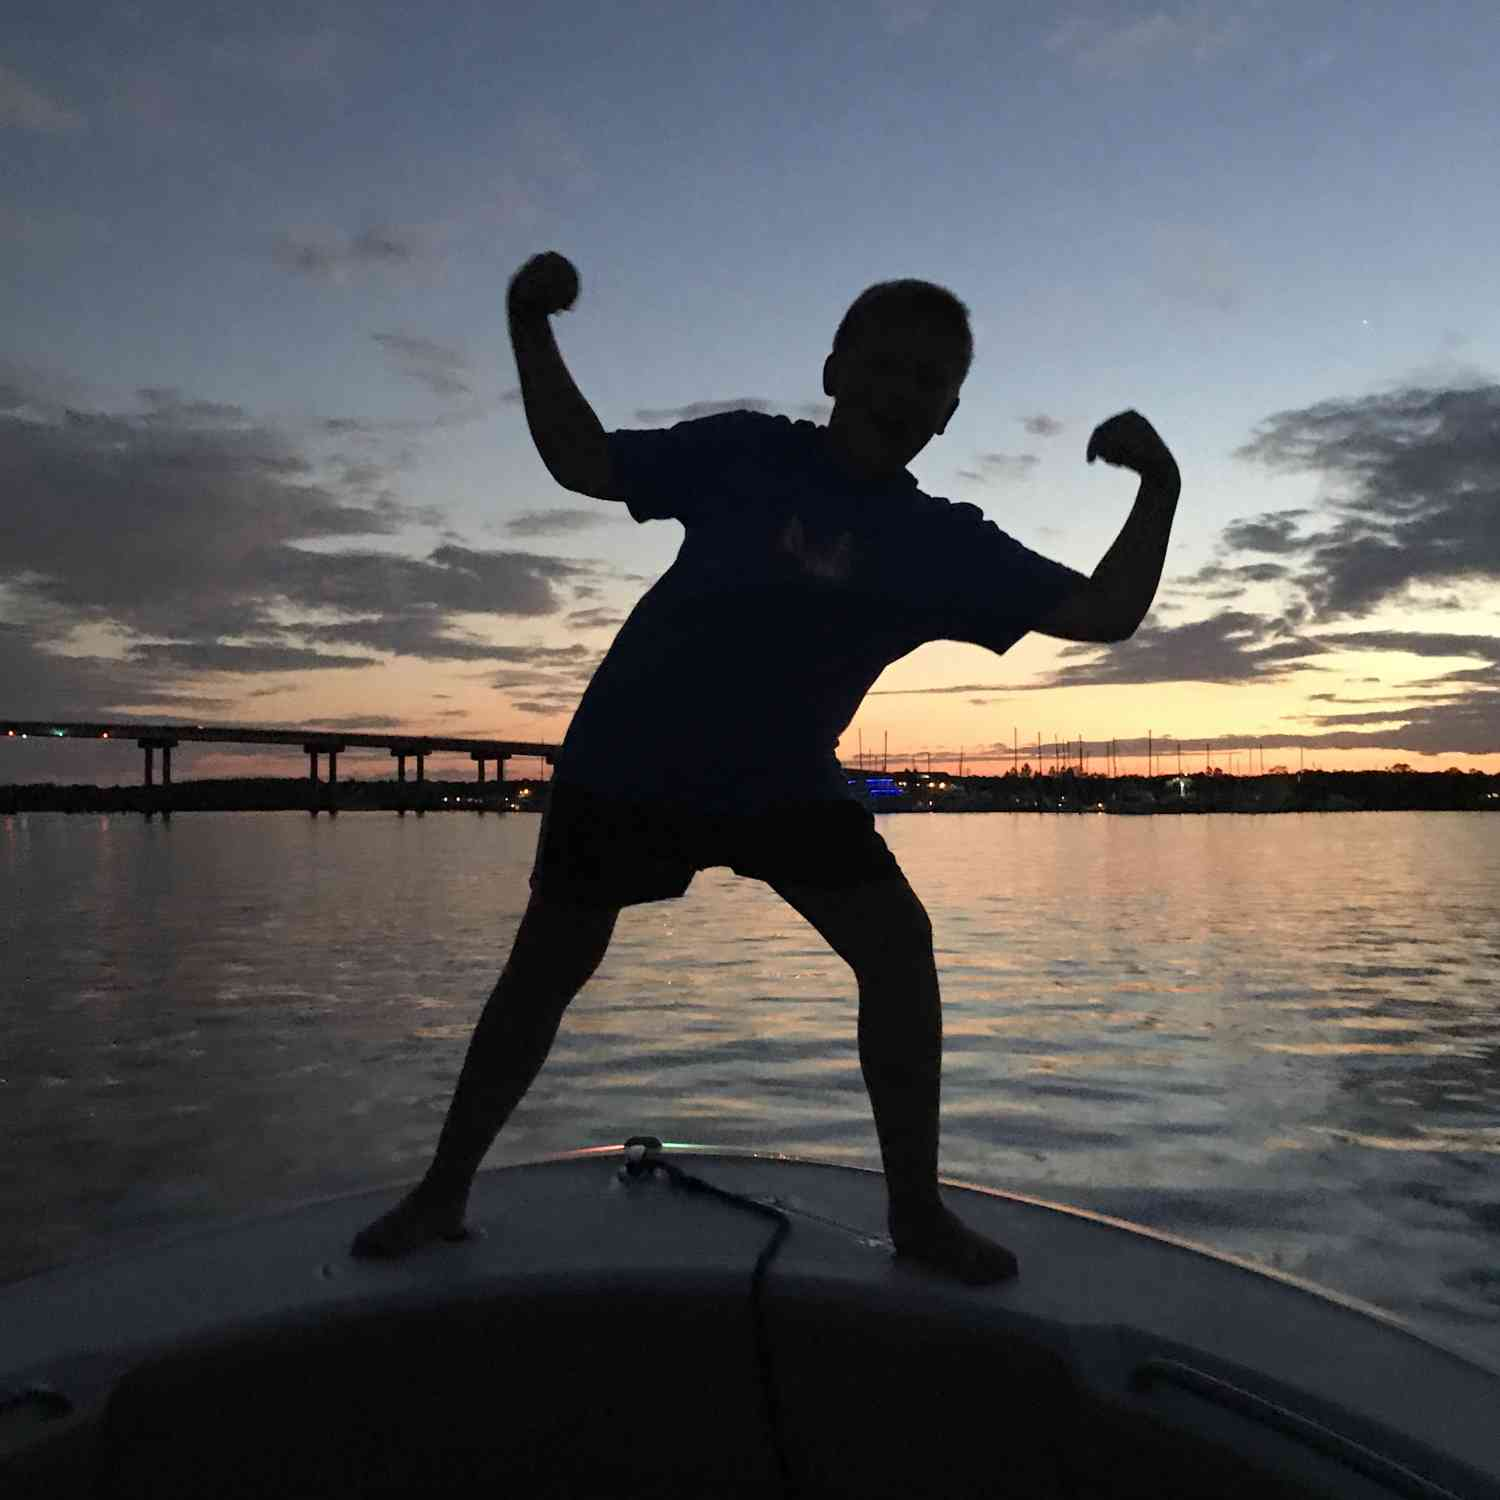 Title: #SBO fun - On board their Sportsman Heritage 231 Center Console - Location: John Island , SC. Participating in the Photo Contest #SportsmanJanuary2020